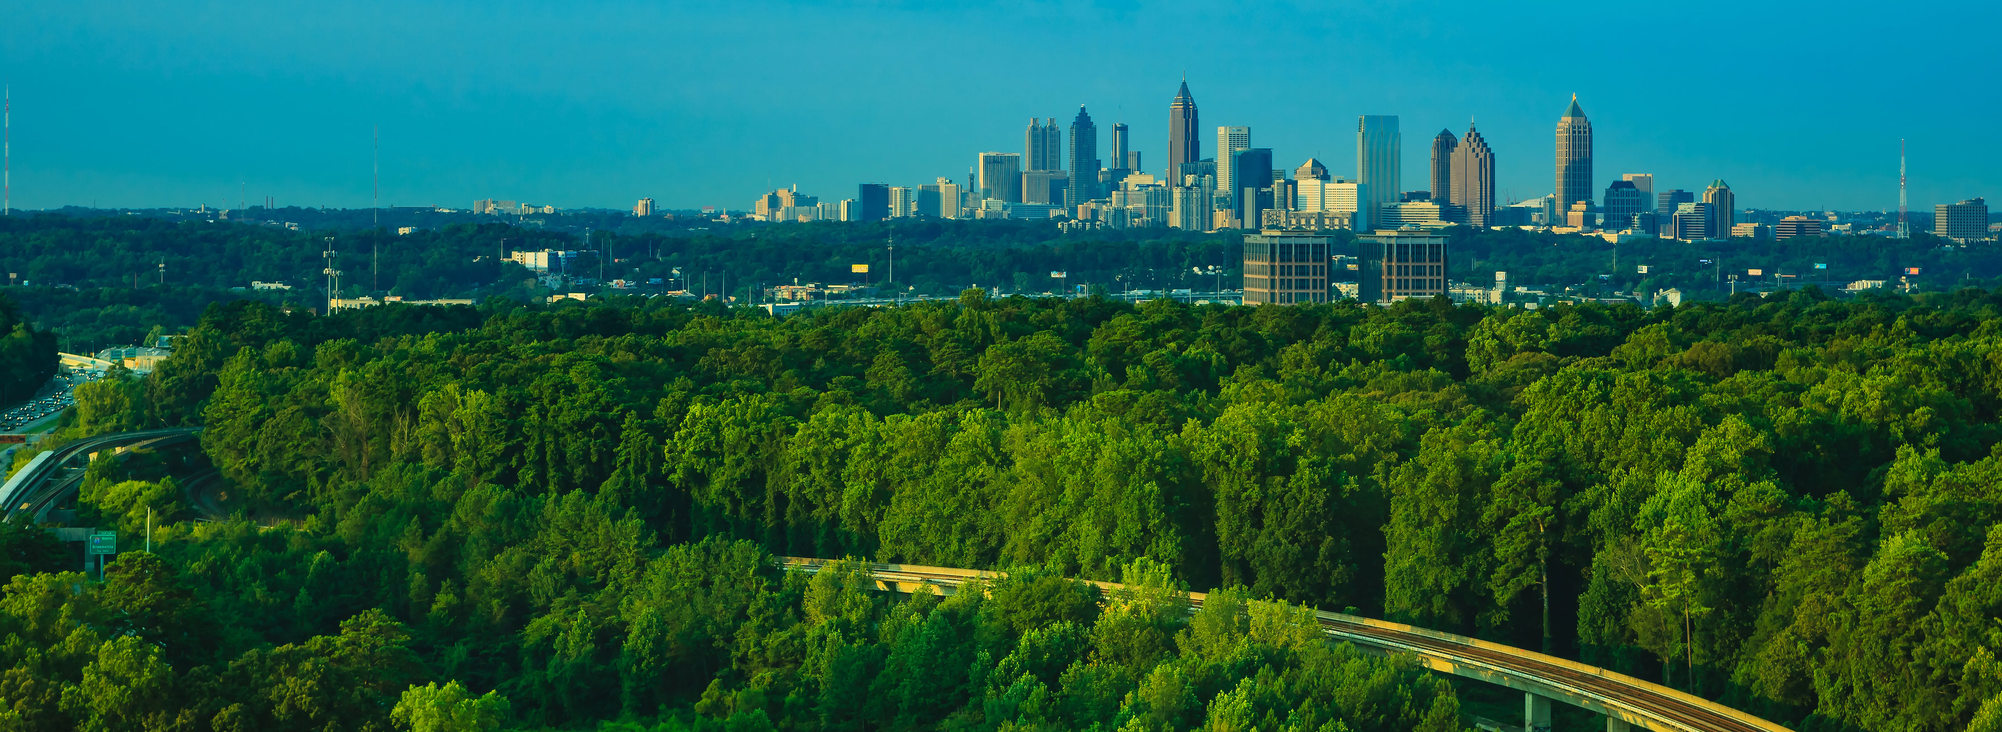 Wide skyline photo of Atlanta